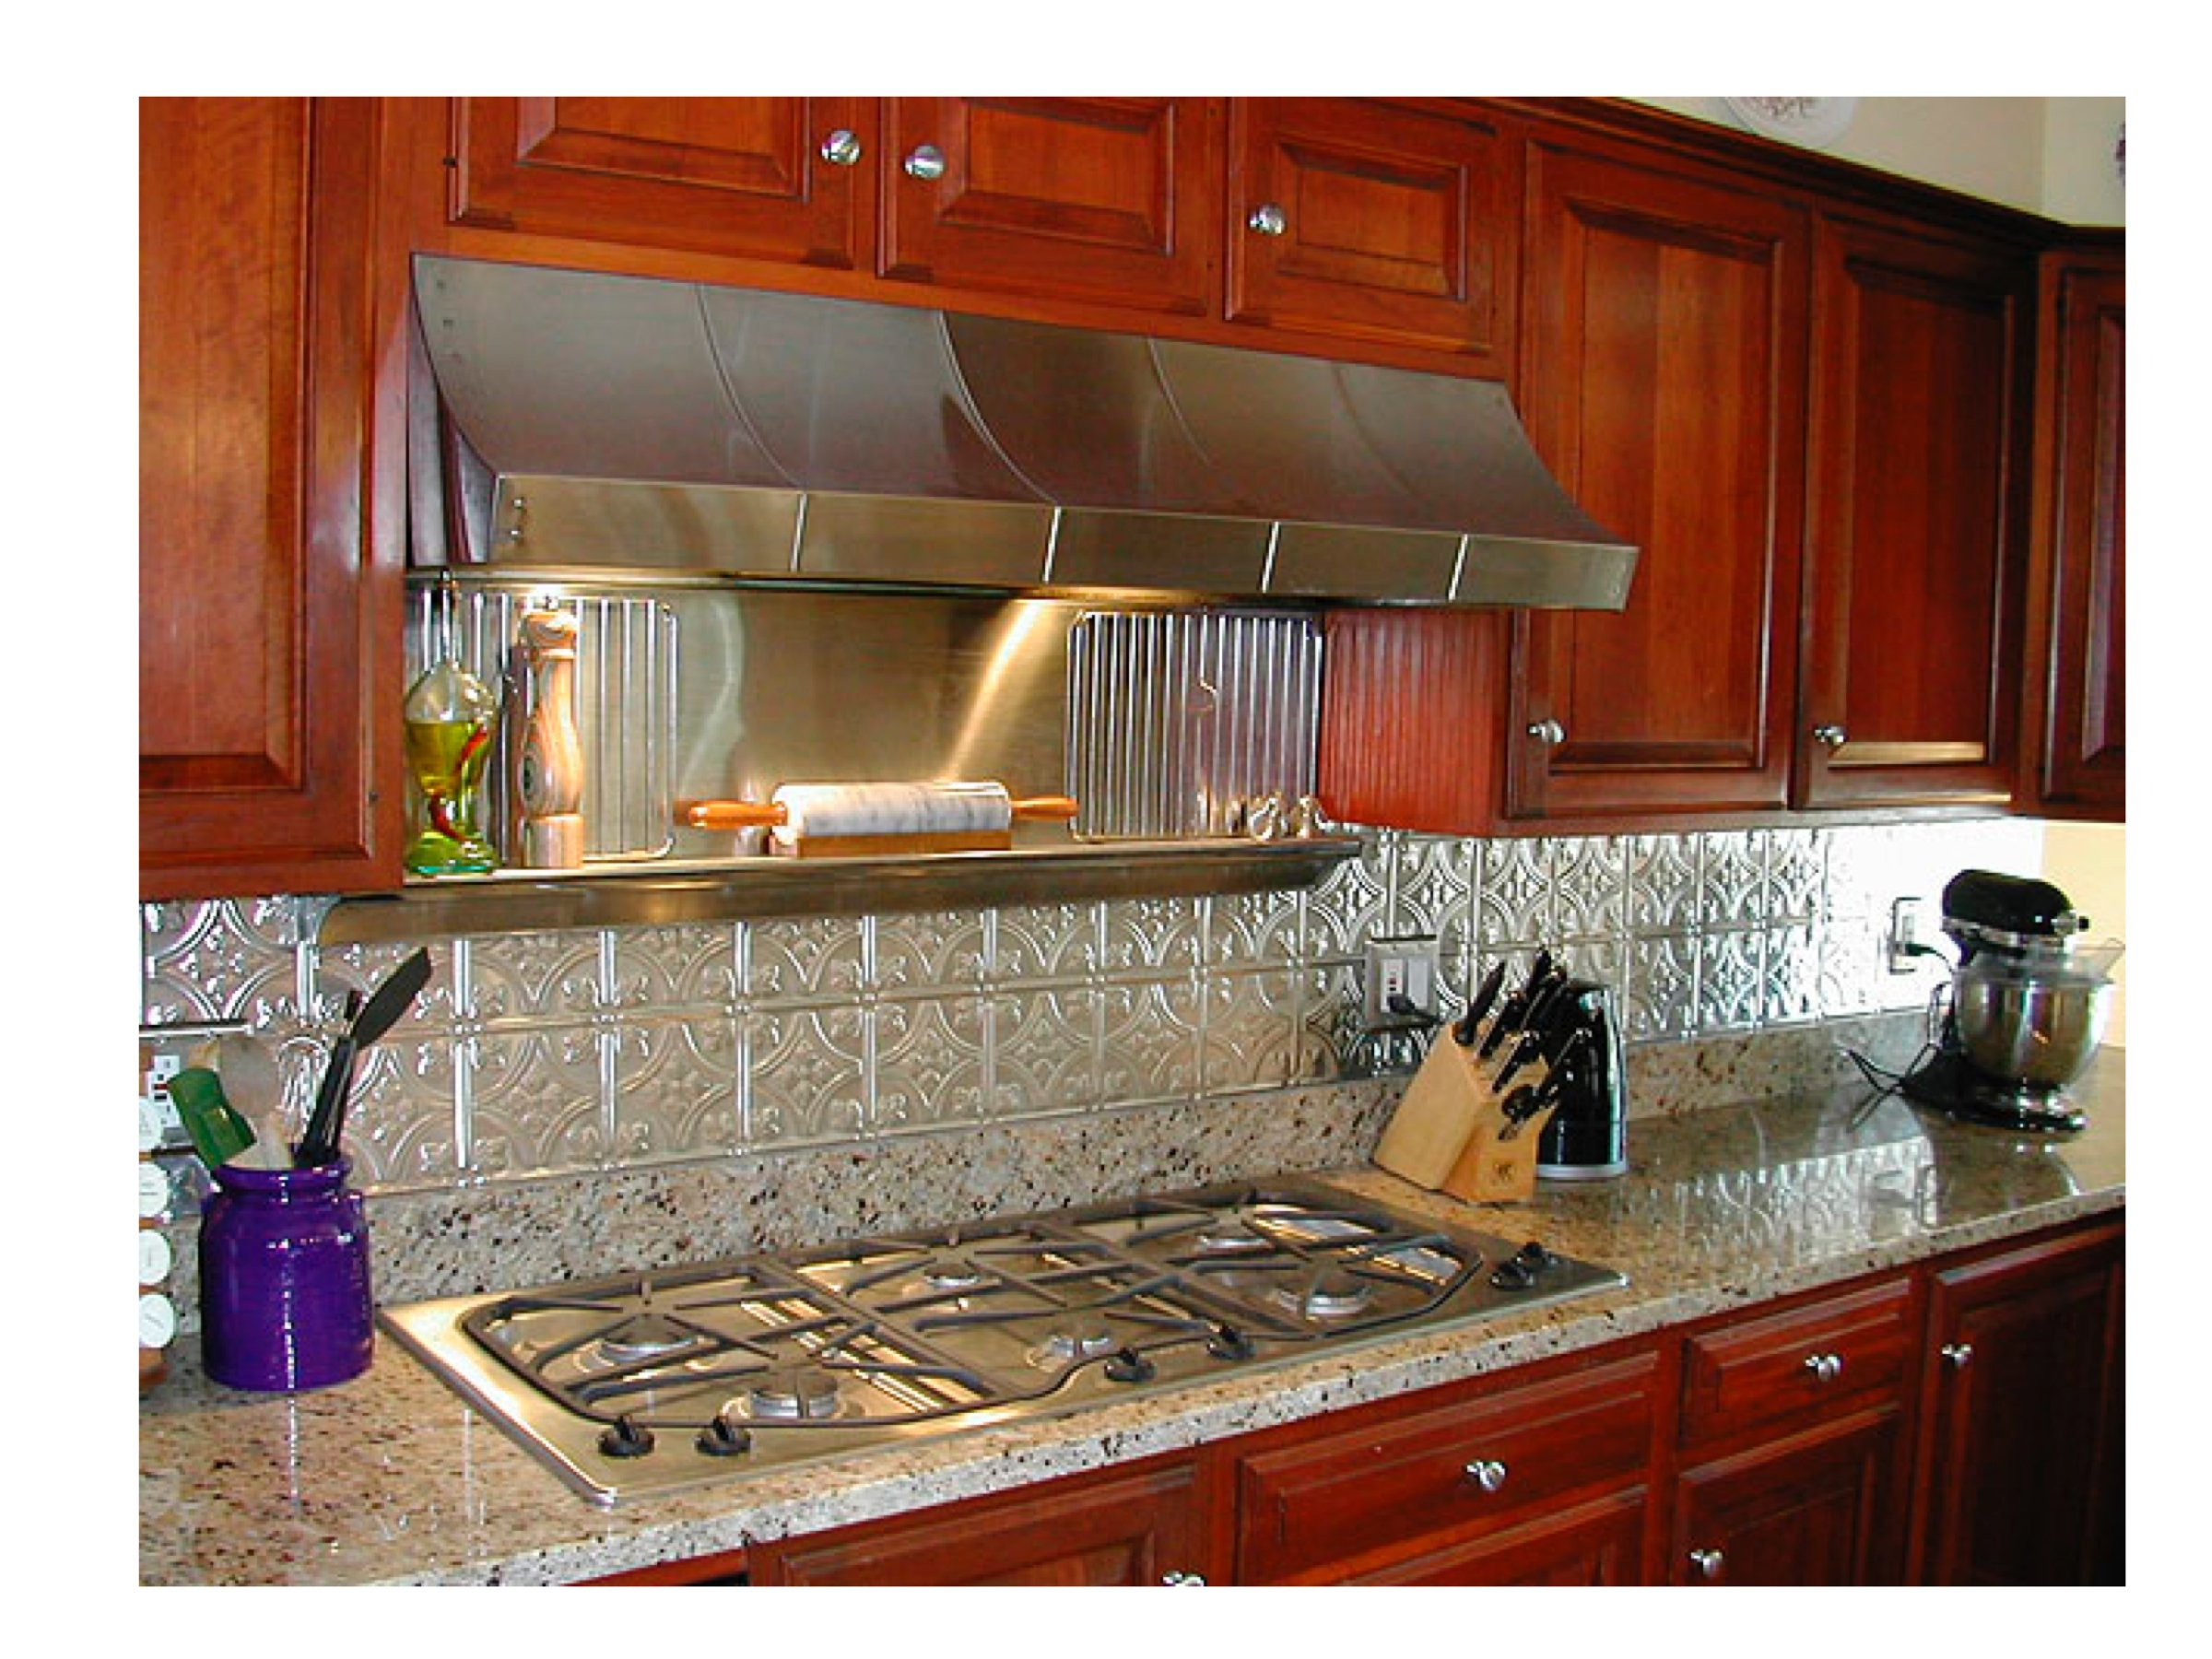 - Kitchen Backsplash Ideas, Decorative Tin Tiles, Metal Backsplash